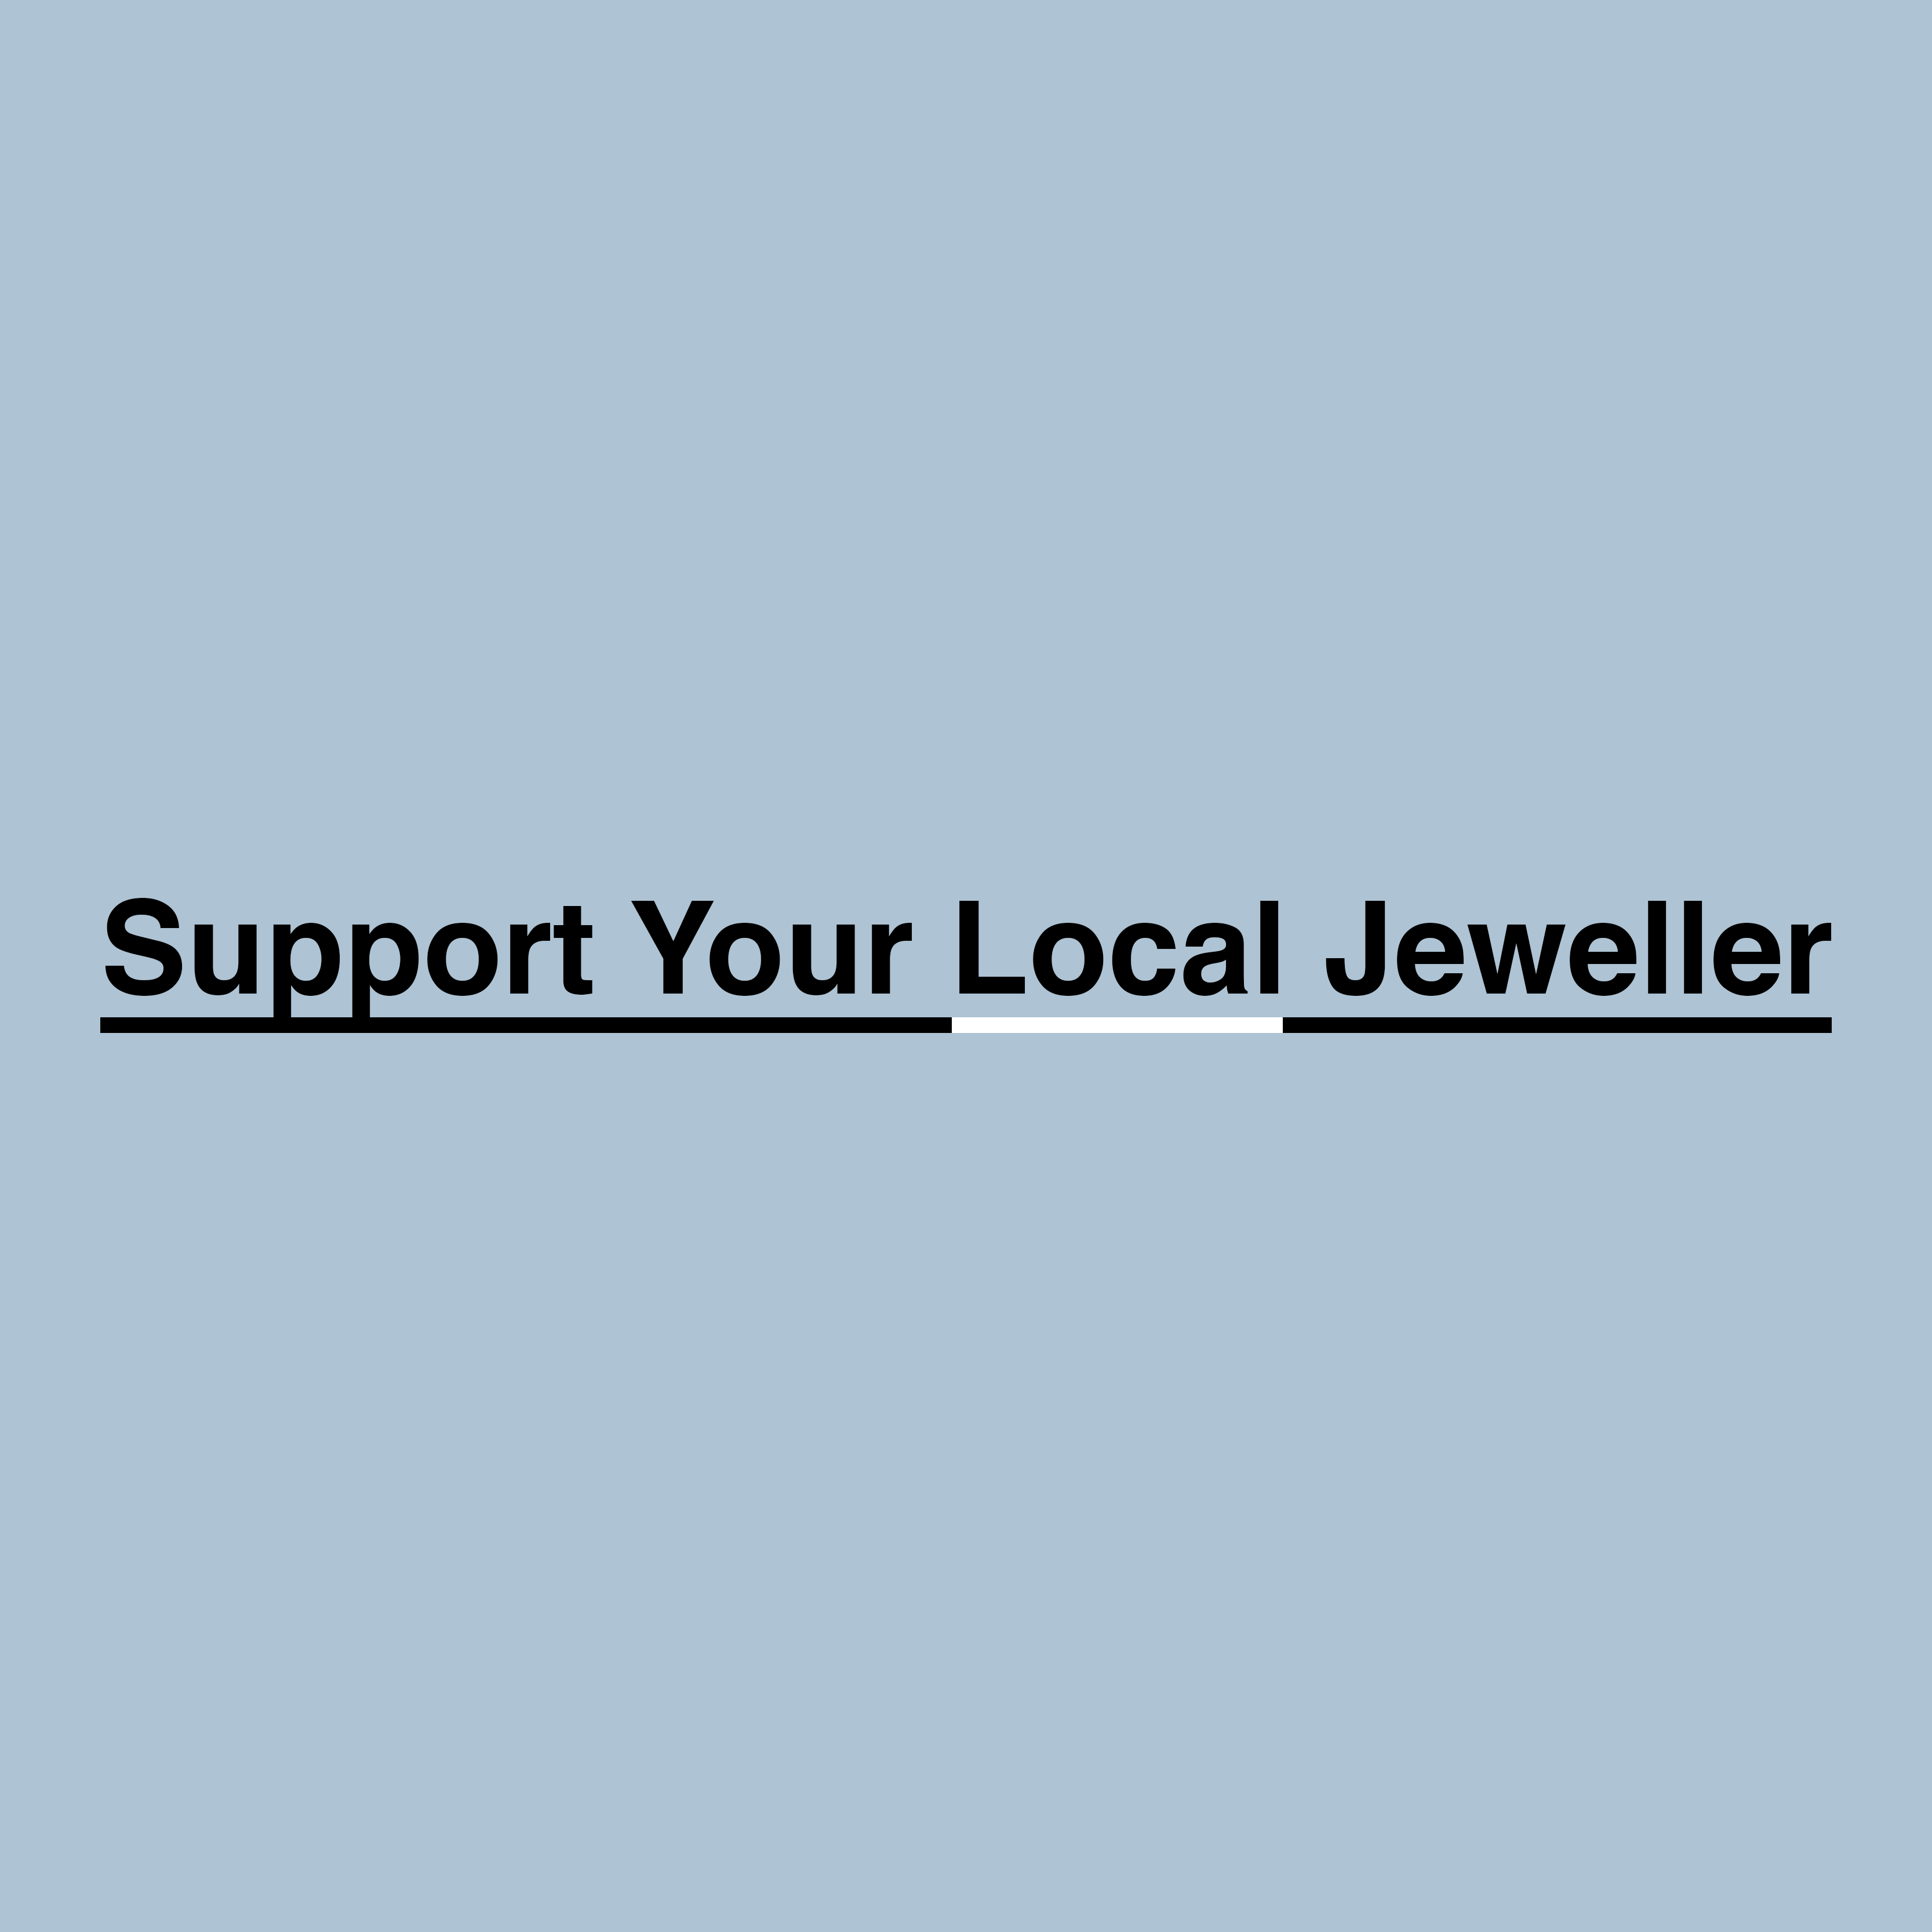 Support Your Local Jeweller Image 2